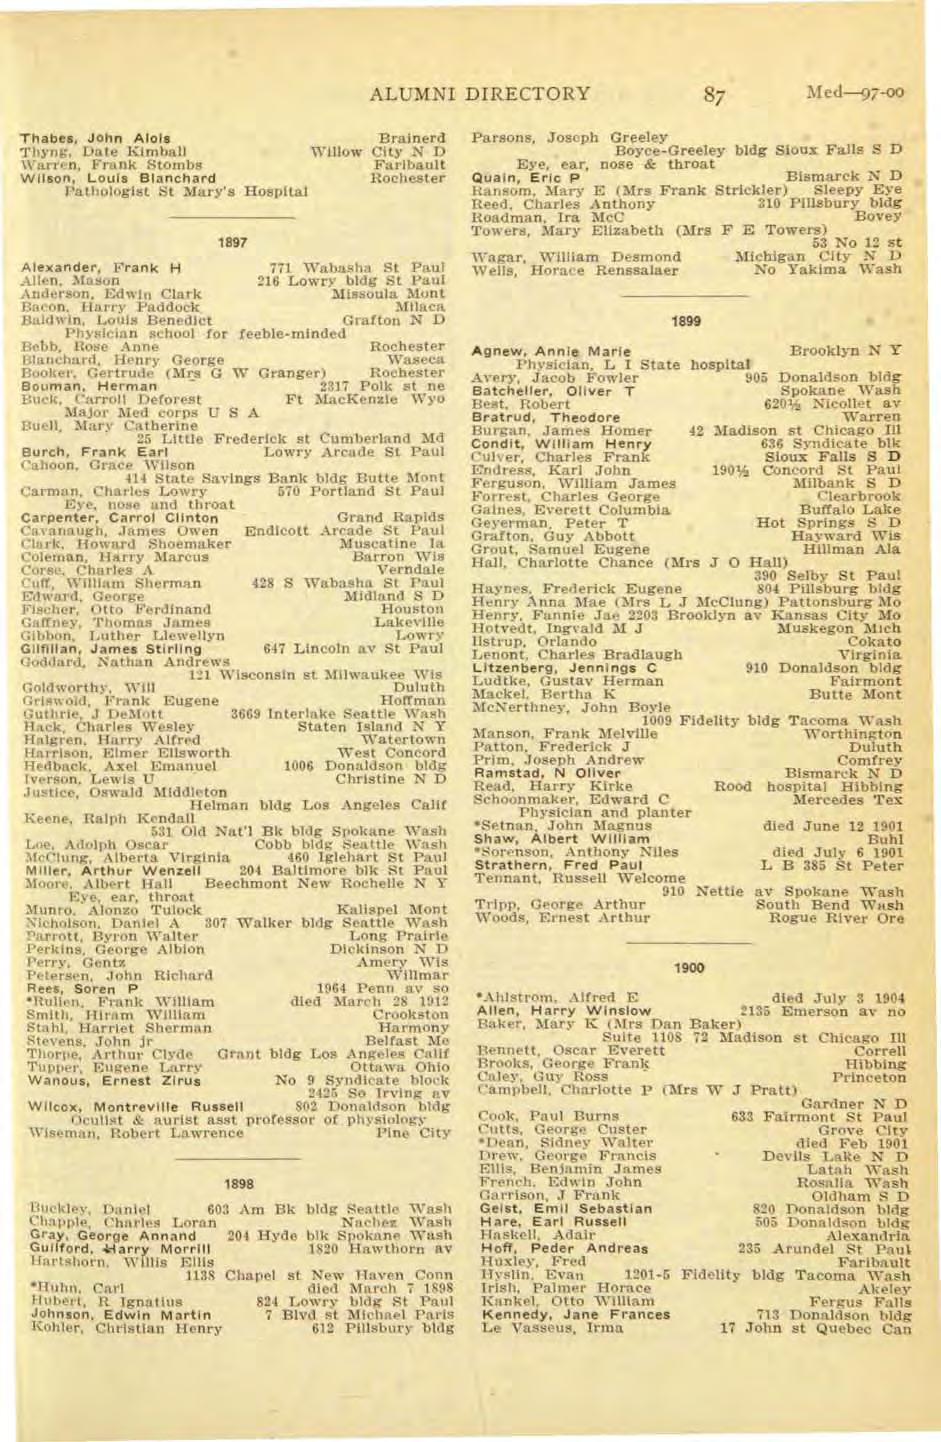 ALUMNI DIRECTORY i\fed---97-00 Thabes, John Alols Brainerd Thyng, Date Kimball Willow City N D '\\'arren, Frank Stombs Faribault Wilson, Louis Bla nchard Rochester Pathologist St Mary's Hospital 1897